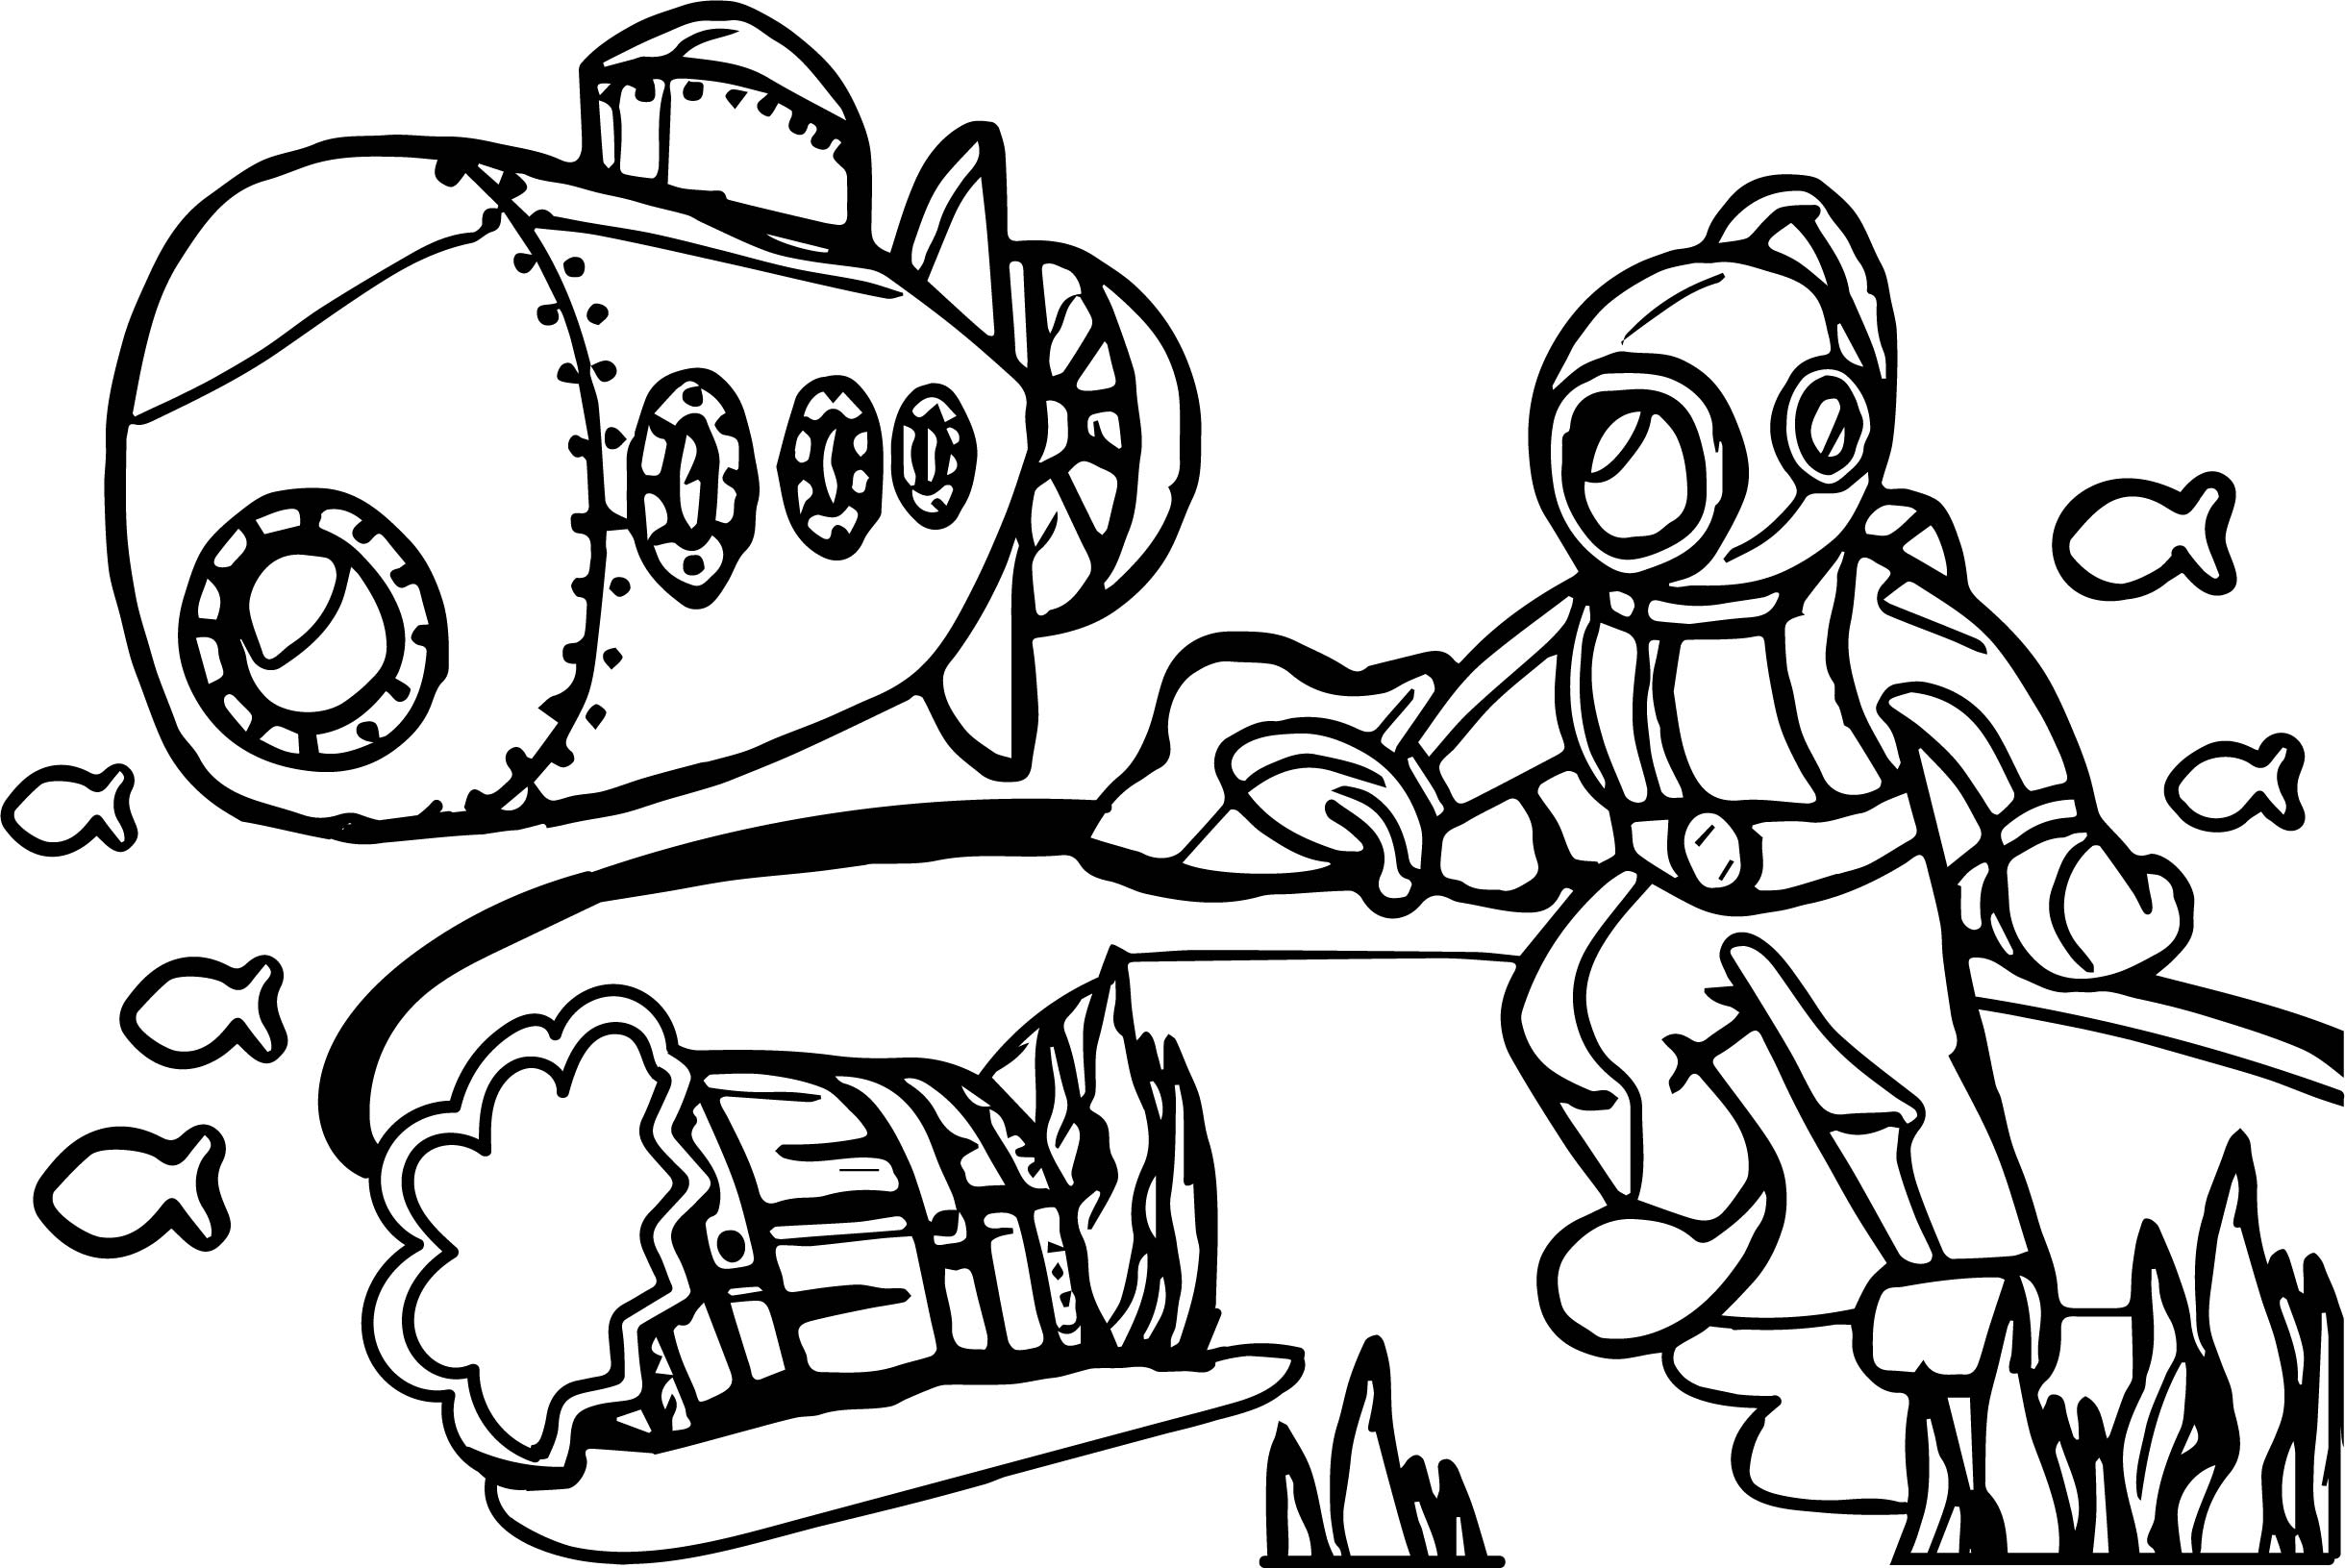 Cartoon Underwater Adventure Coloring Page